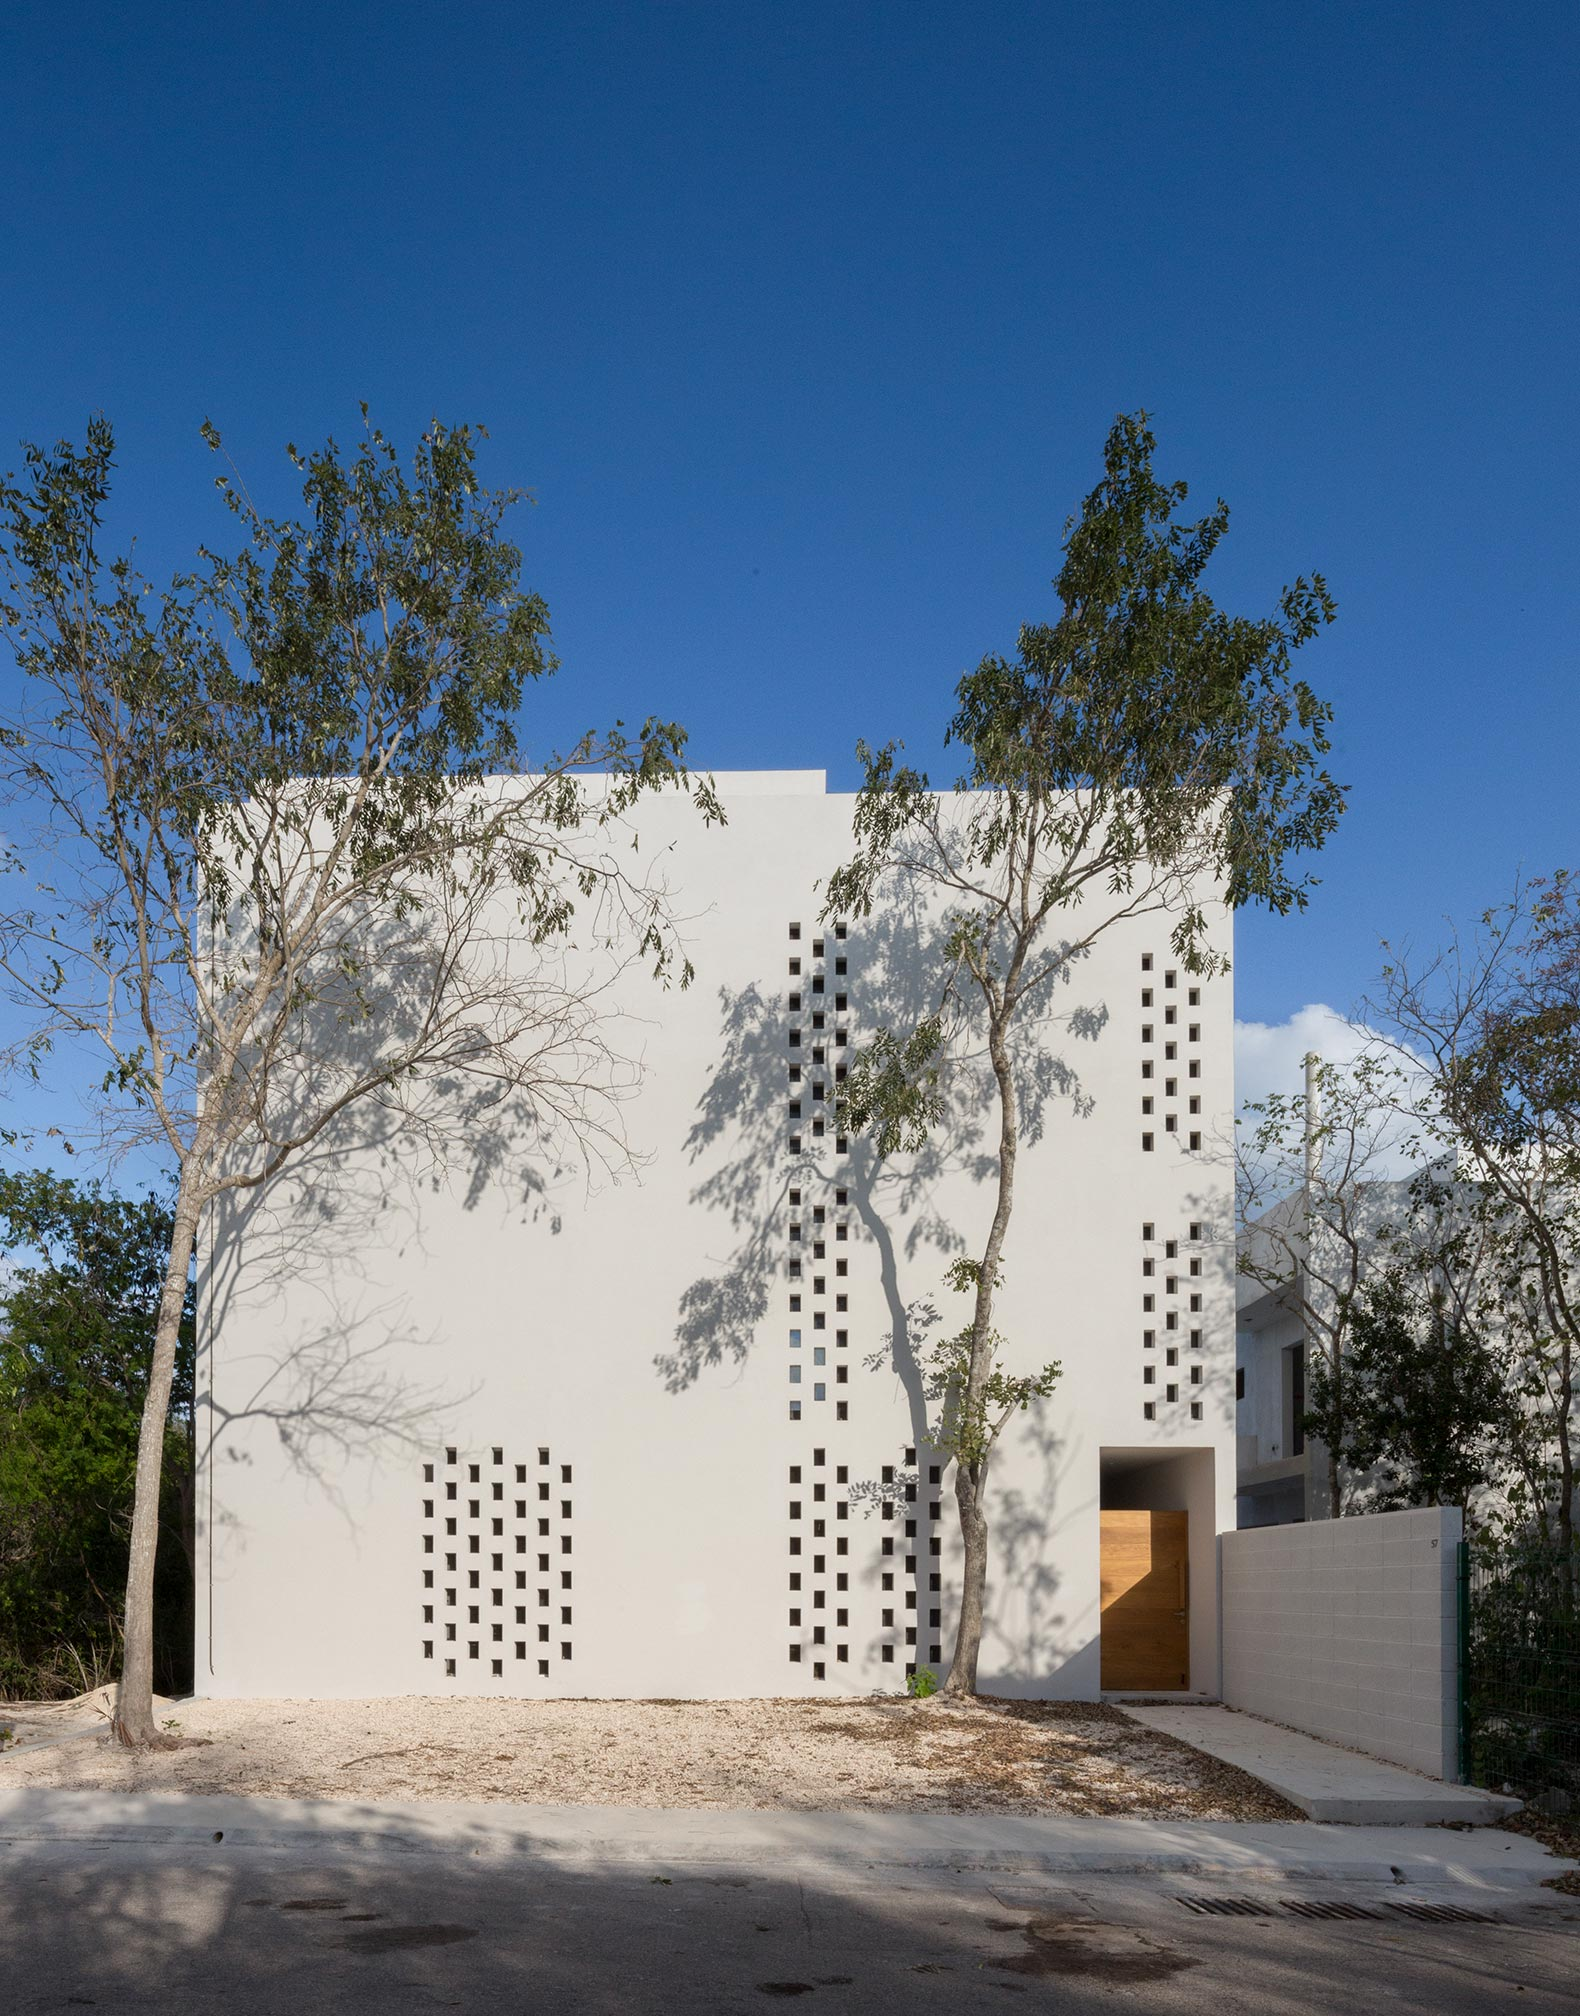 PM House by Cadaval & Solà-Morales. Photograph by Sandra Pereznieto